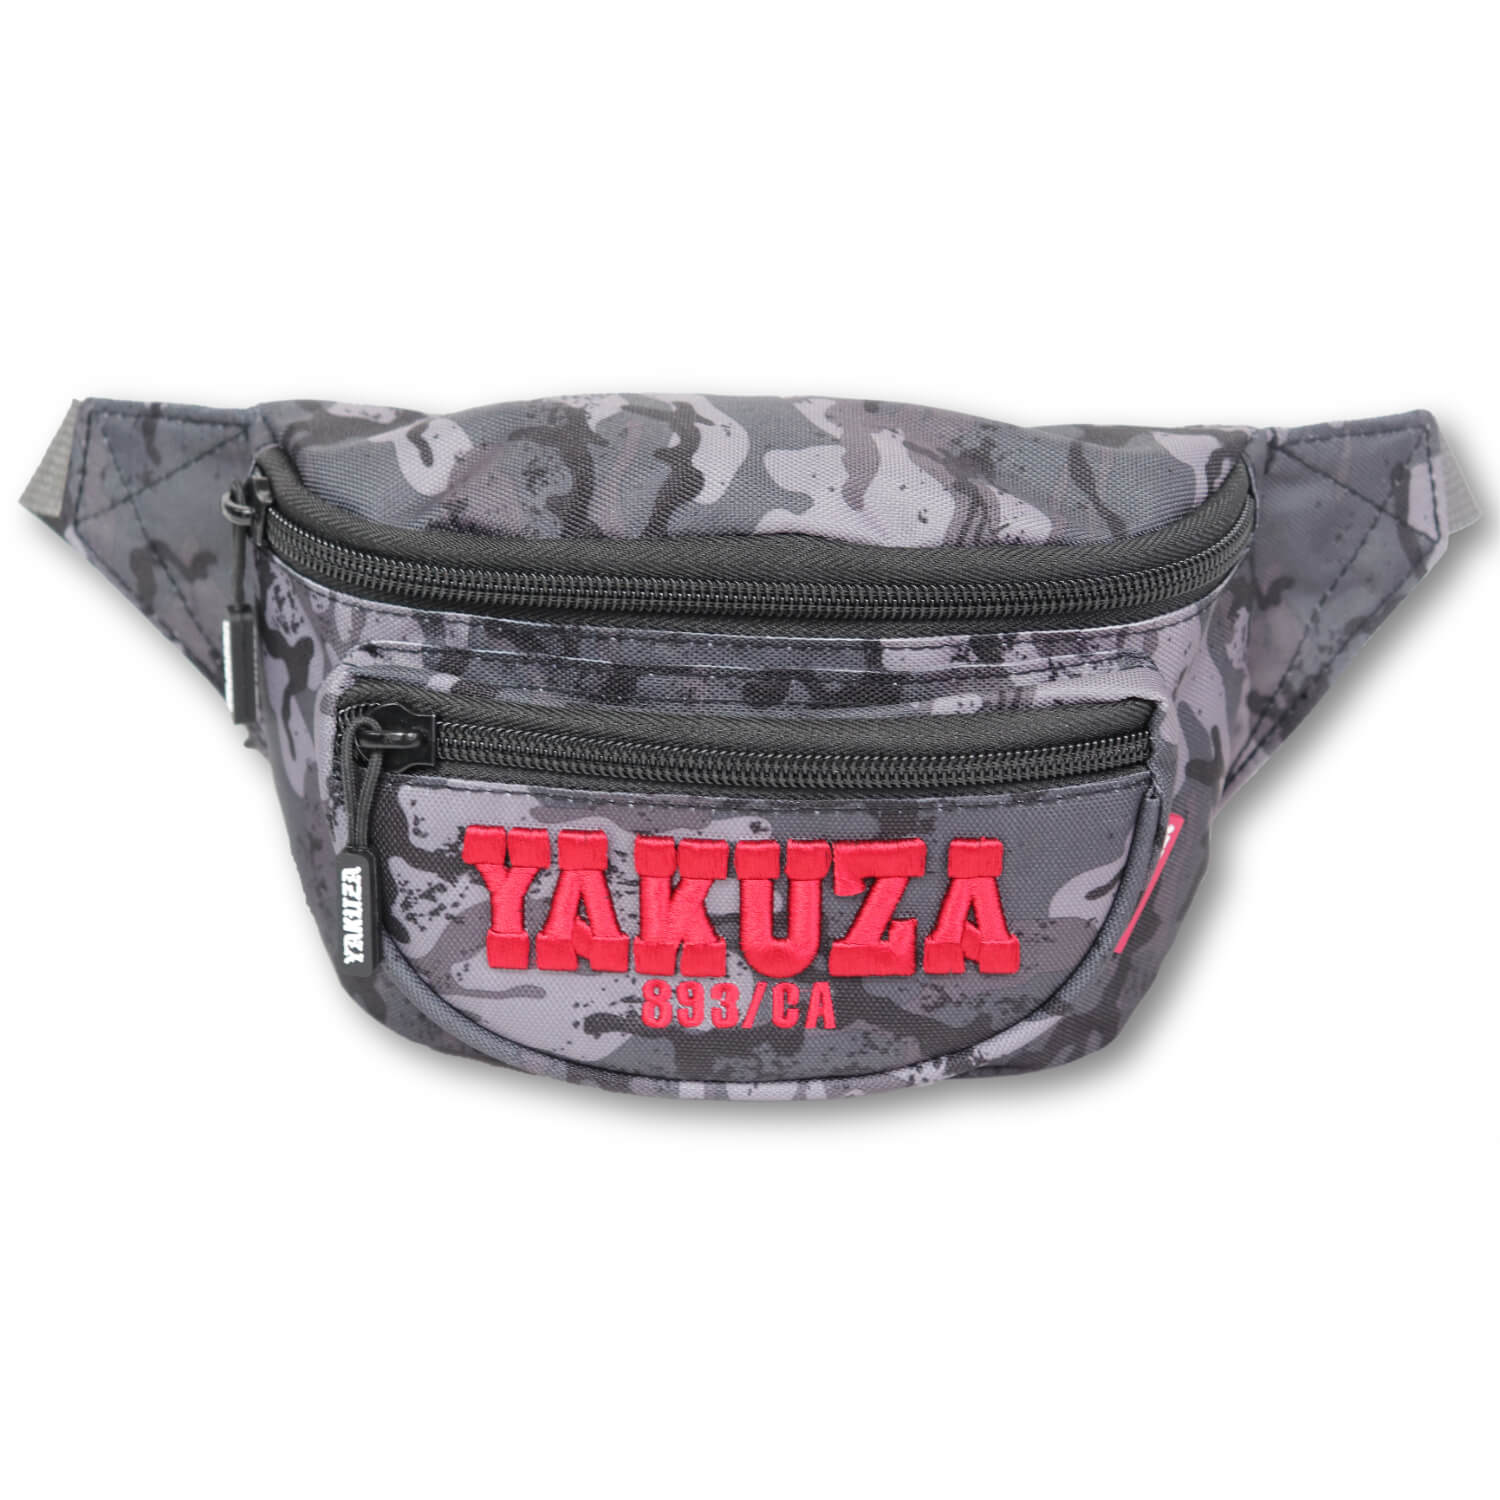 Yakuza, 893College Belt Bag, GTB16305 CAMGRY ONE